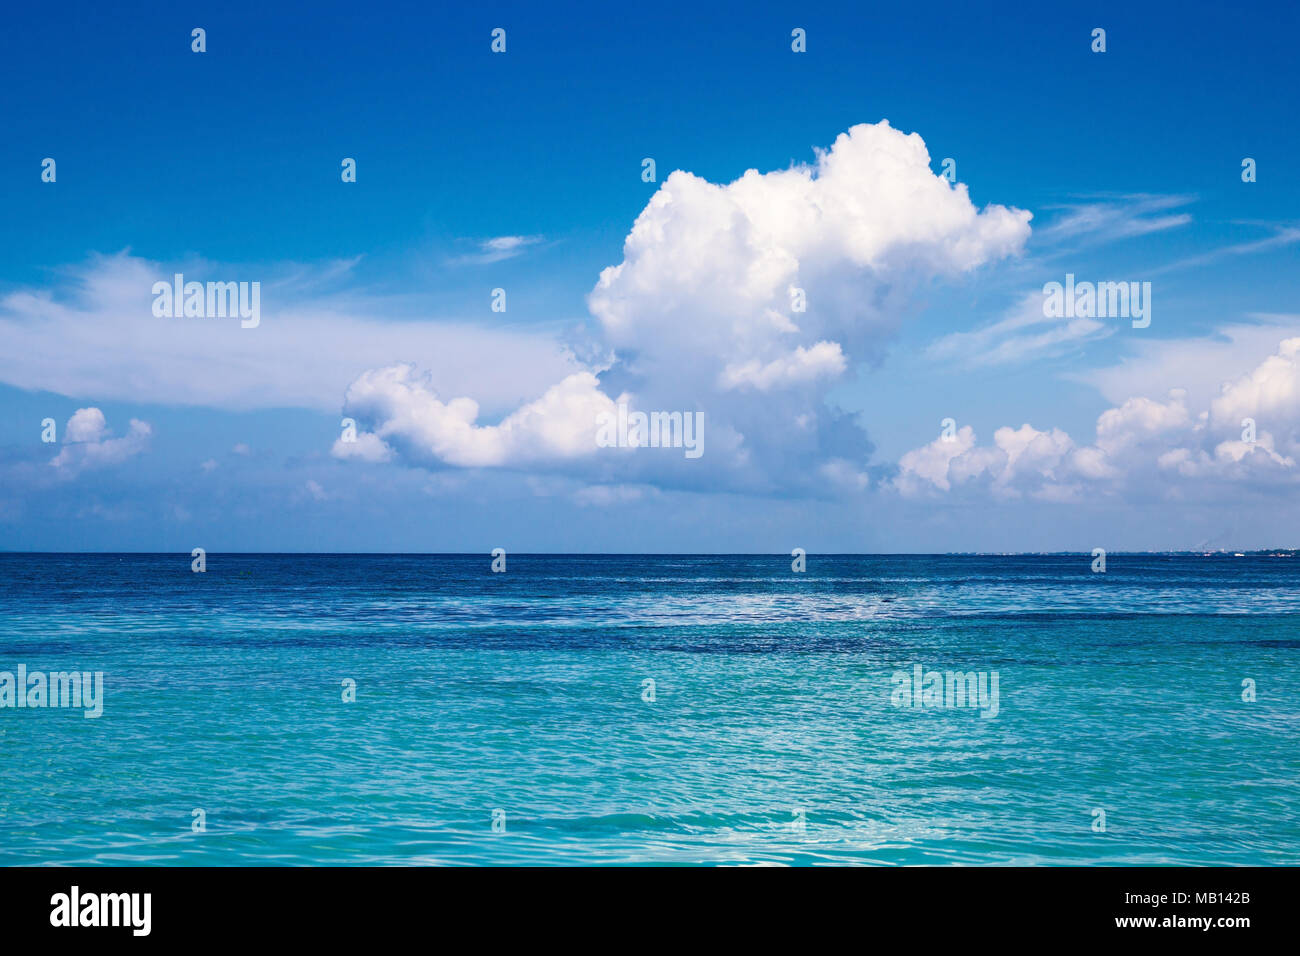 the Caribbean. A saturated blue sky, clouds and the sea. - Stock Image